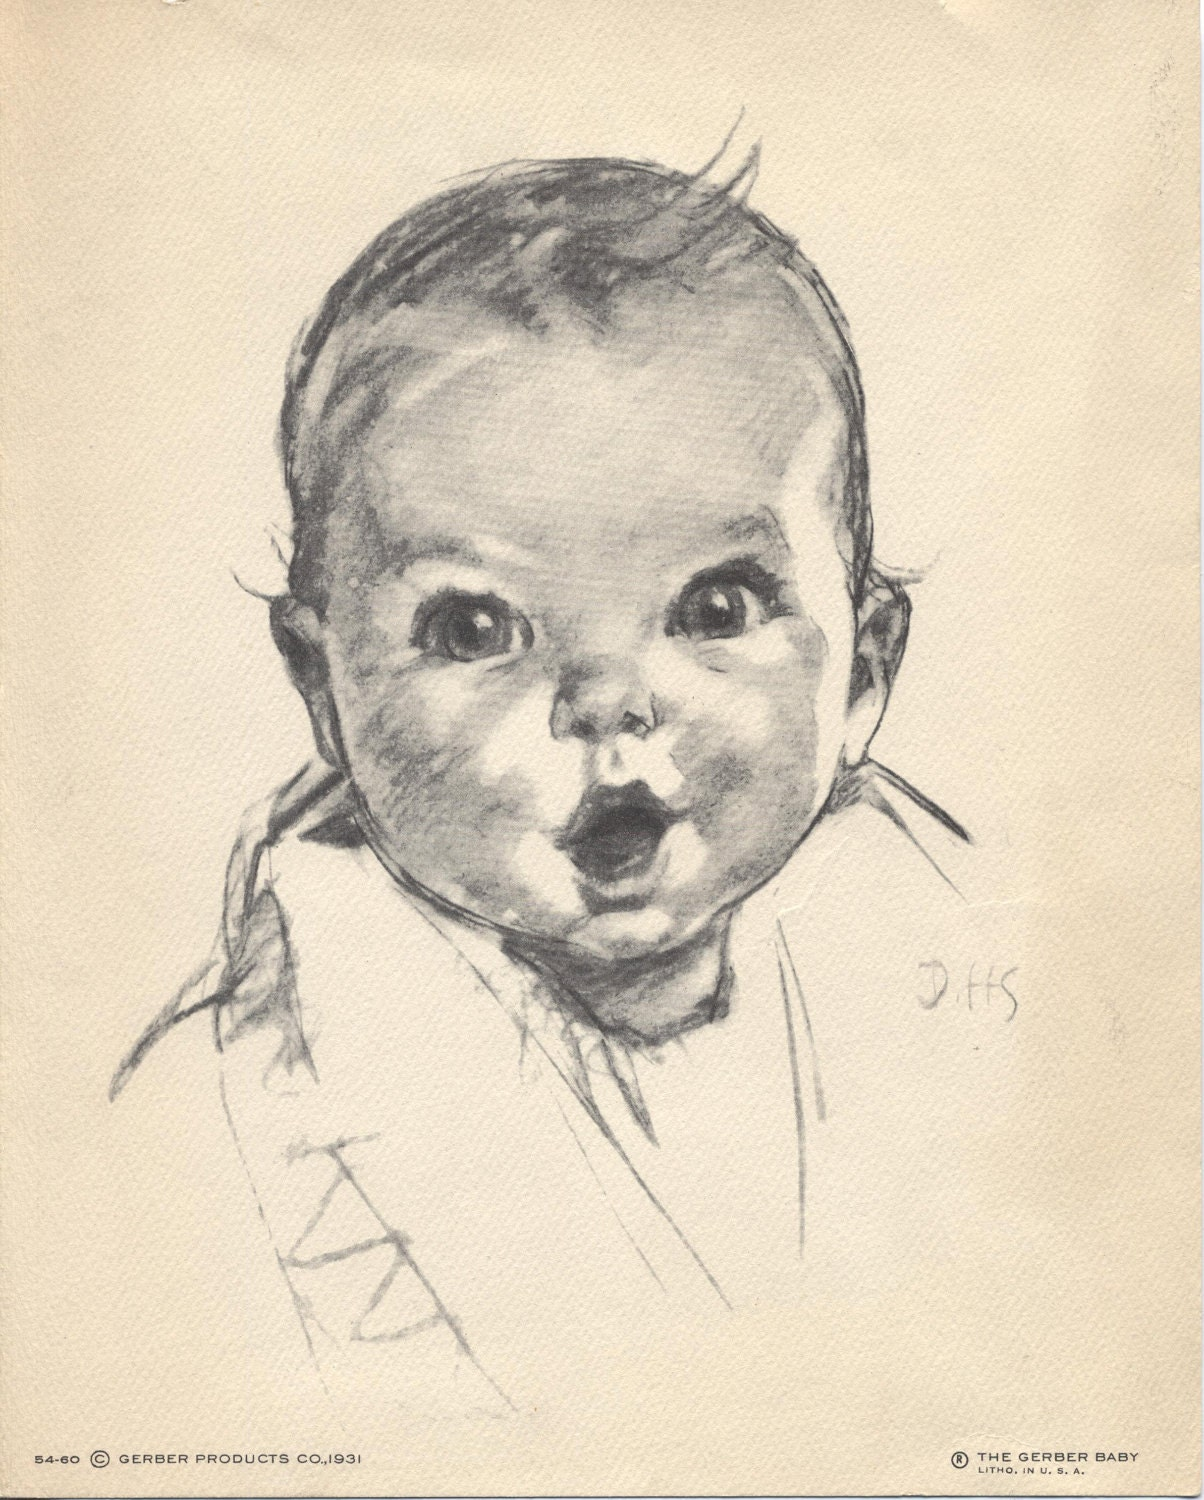 The Gerber Baby Litho Print 54 60 S62 Dated 1931 Original